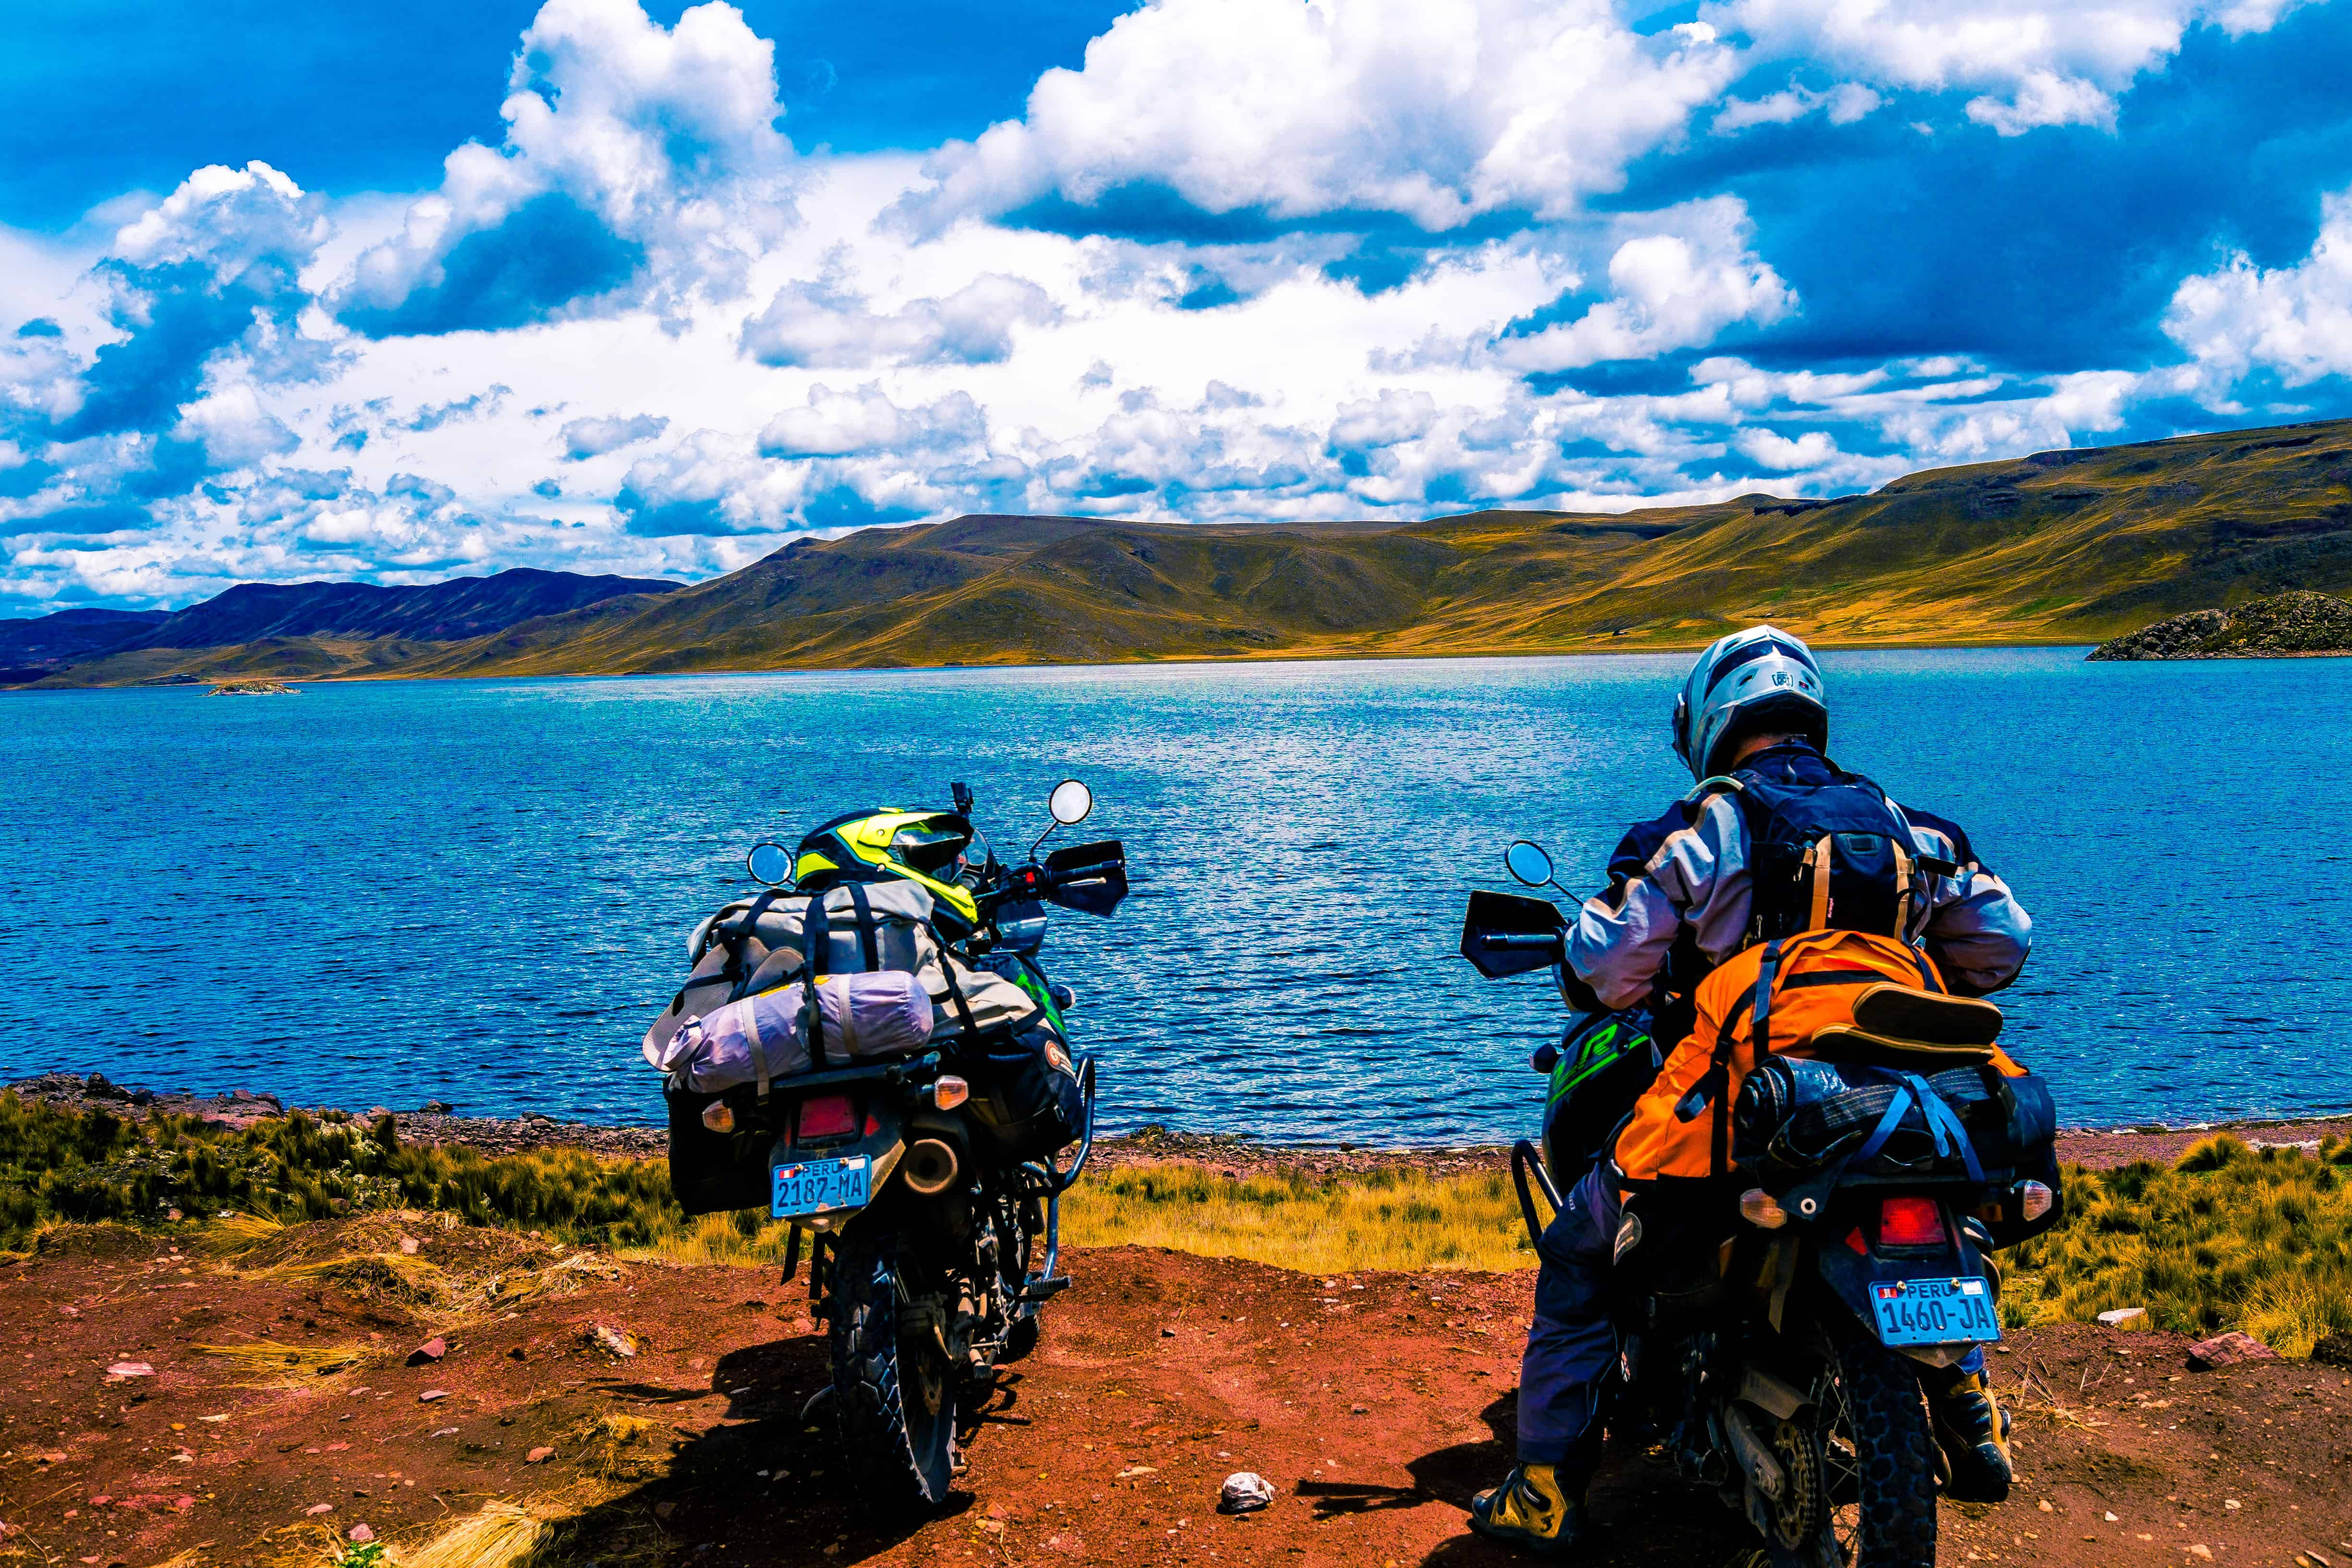 motorcycles at a lake in Peru for the 2019 dakar rally